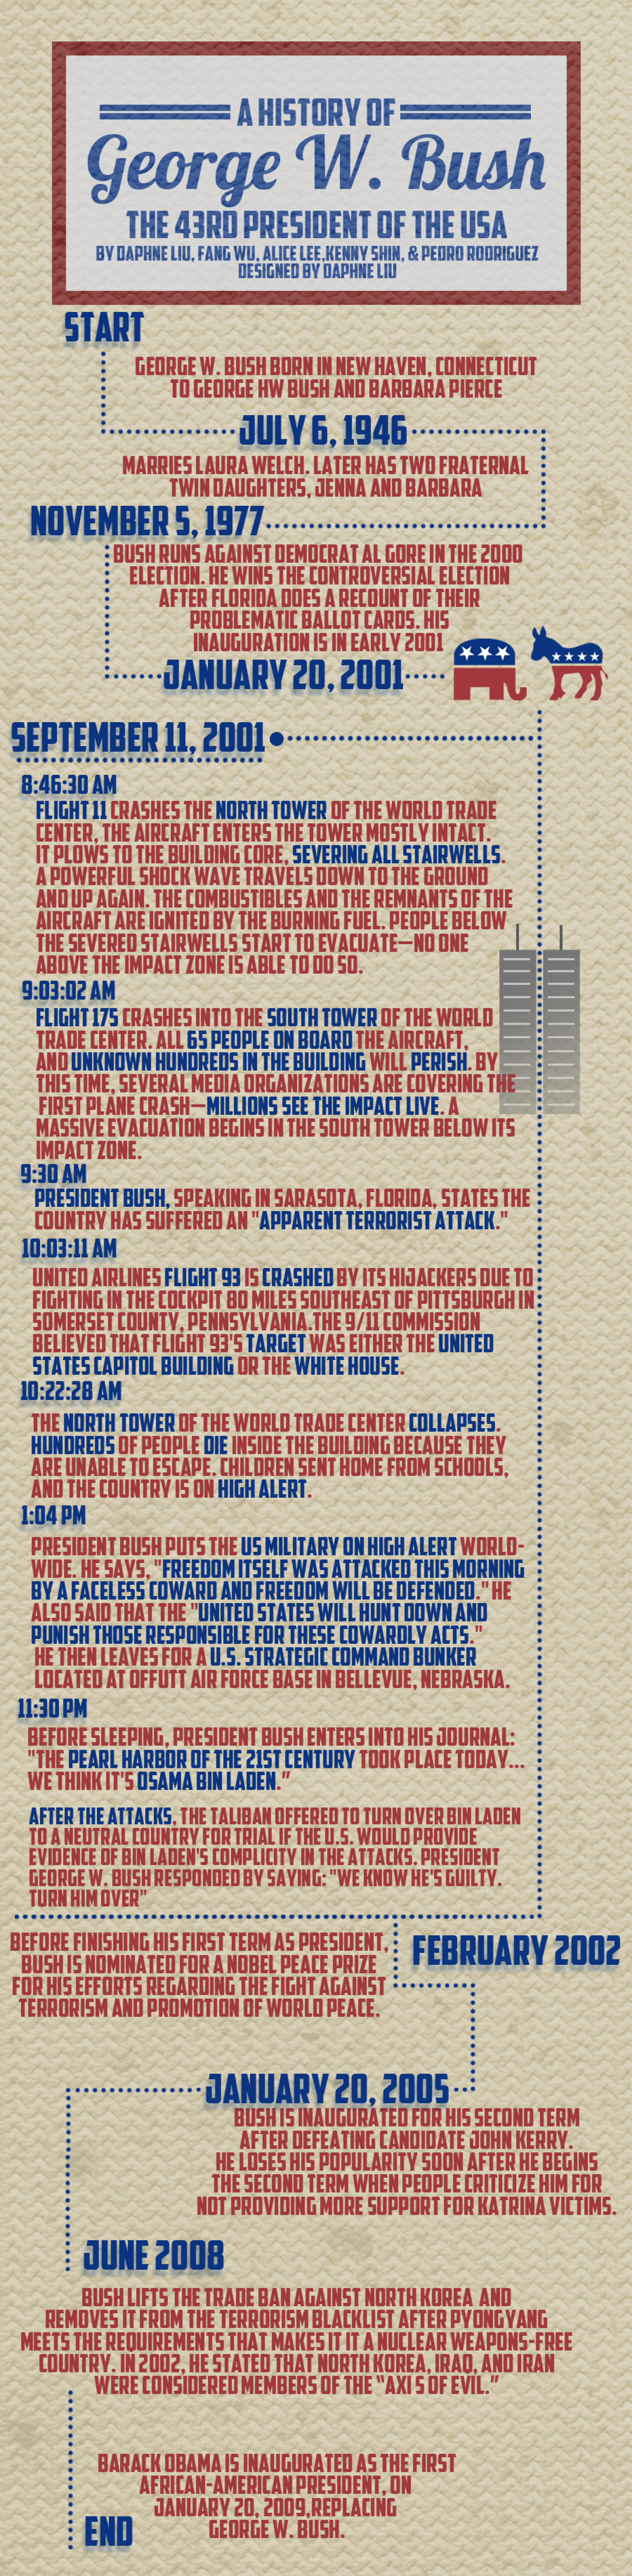 A History of George W. Bush Infographic